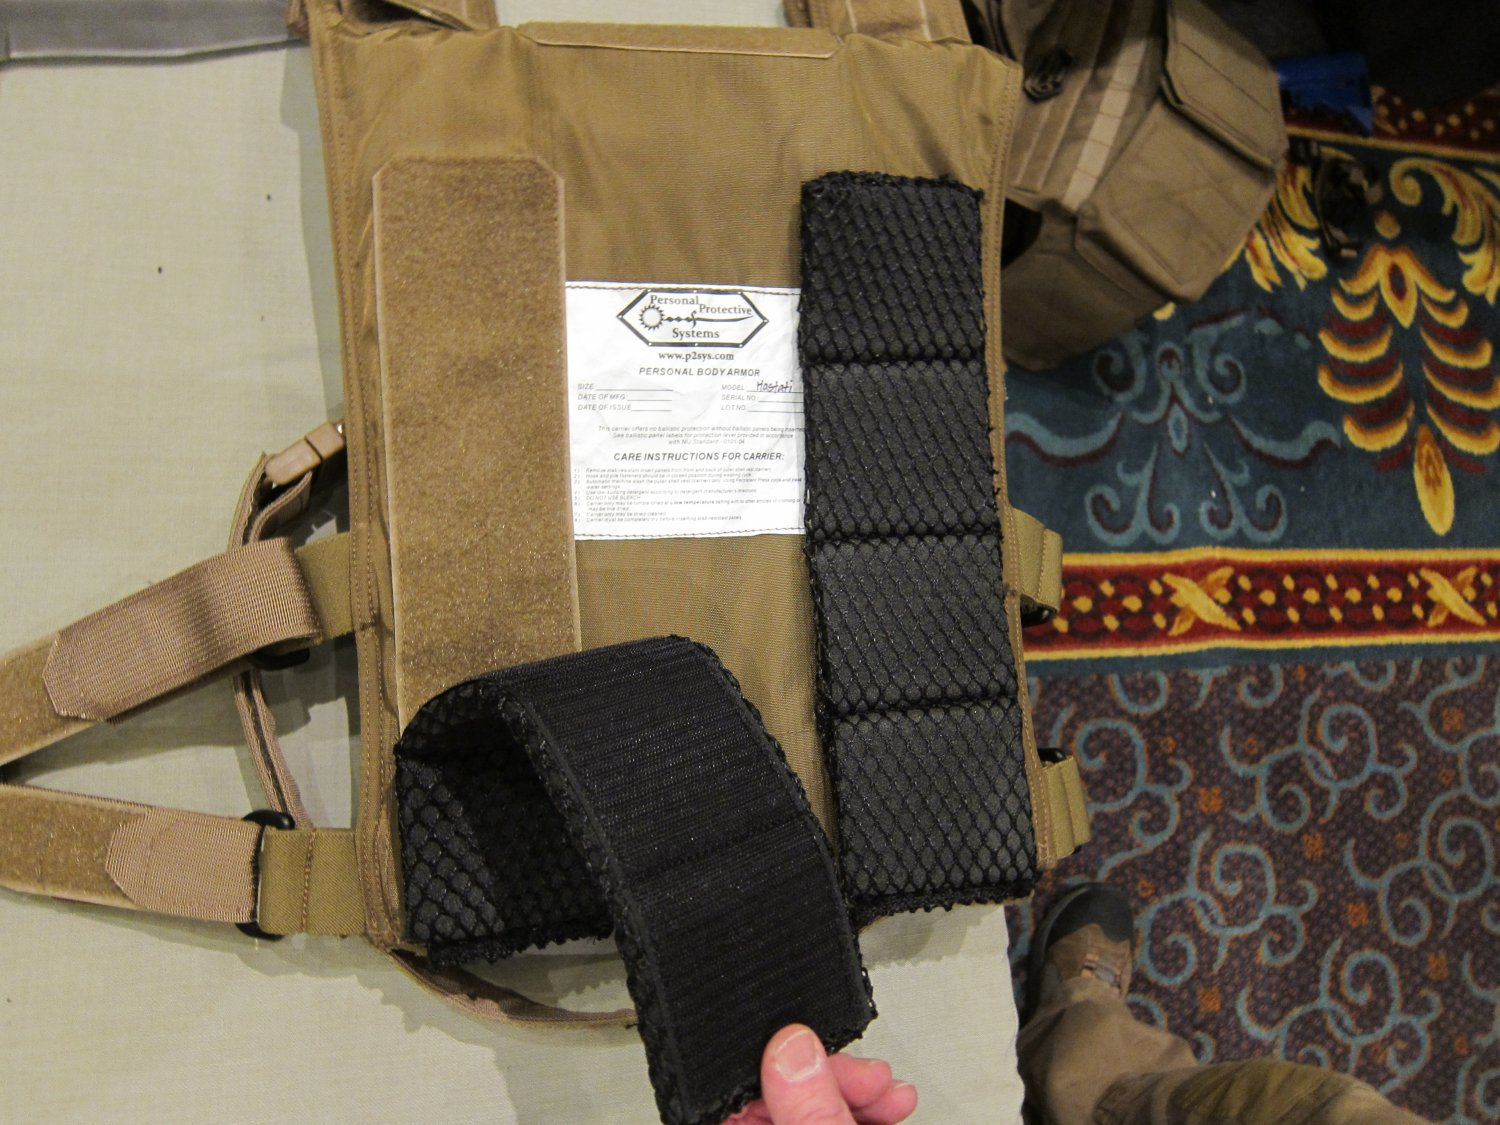 P2 Systems P2Sys Centurion Armour Modular Internal Pads for Body Armor Carrier Tactical Vests and Plate Carriers at SHOT Show 2011 4 <!  :en  >Hardpoint Equipment Tactical Armor Carriers (formerly Personal Protective Systems, or P2 Systems): Best Tactical Body Armor Plate Carriers on the Planet? DR Looks at the Latest Hard Point Hard Armor Plate Carriers, Battle Belt, MOLLE Backpack System, and Passive Ventilation Channels/Removable Padding System at SHOT Show 2011 (Photos and Video!) <!  :  >